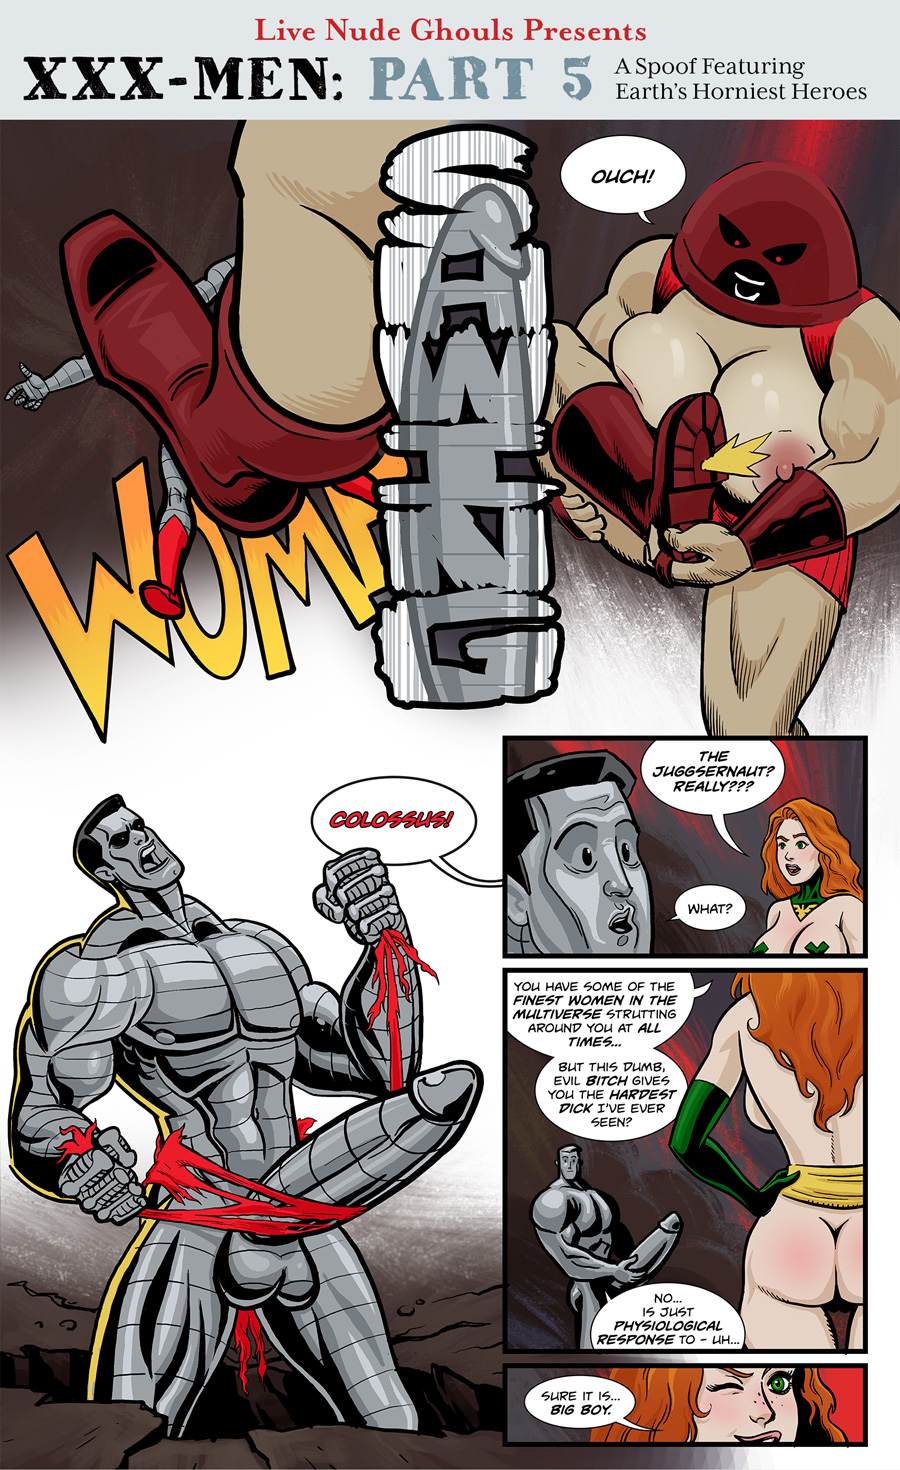 The Juggsernaut attacks Colossus, but gets an unexpected response.